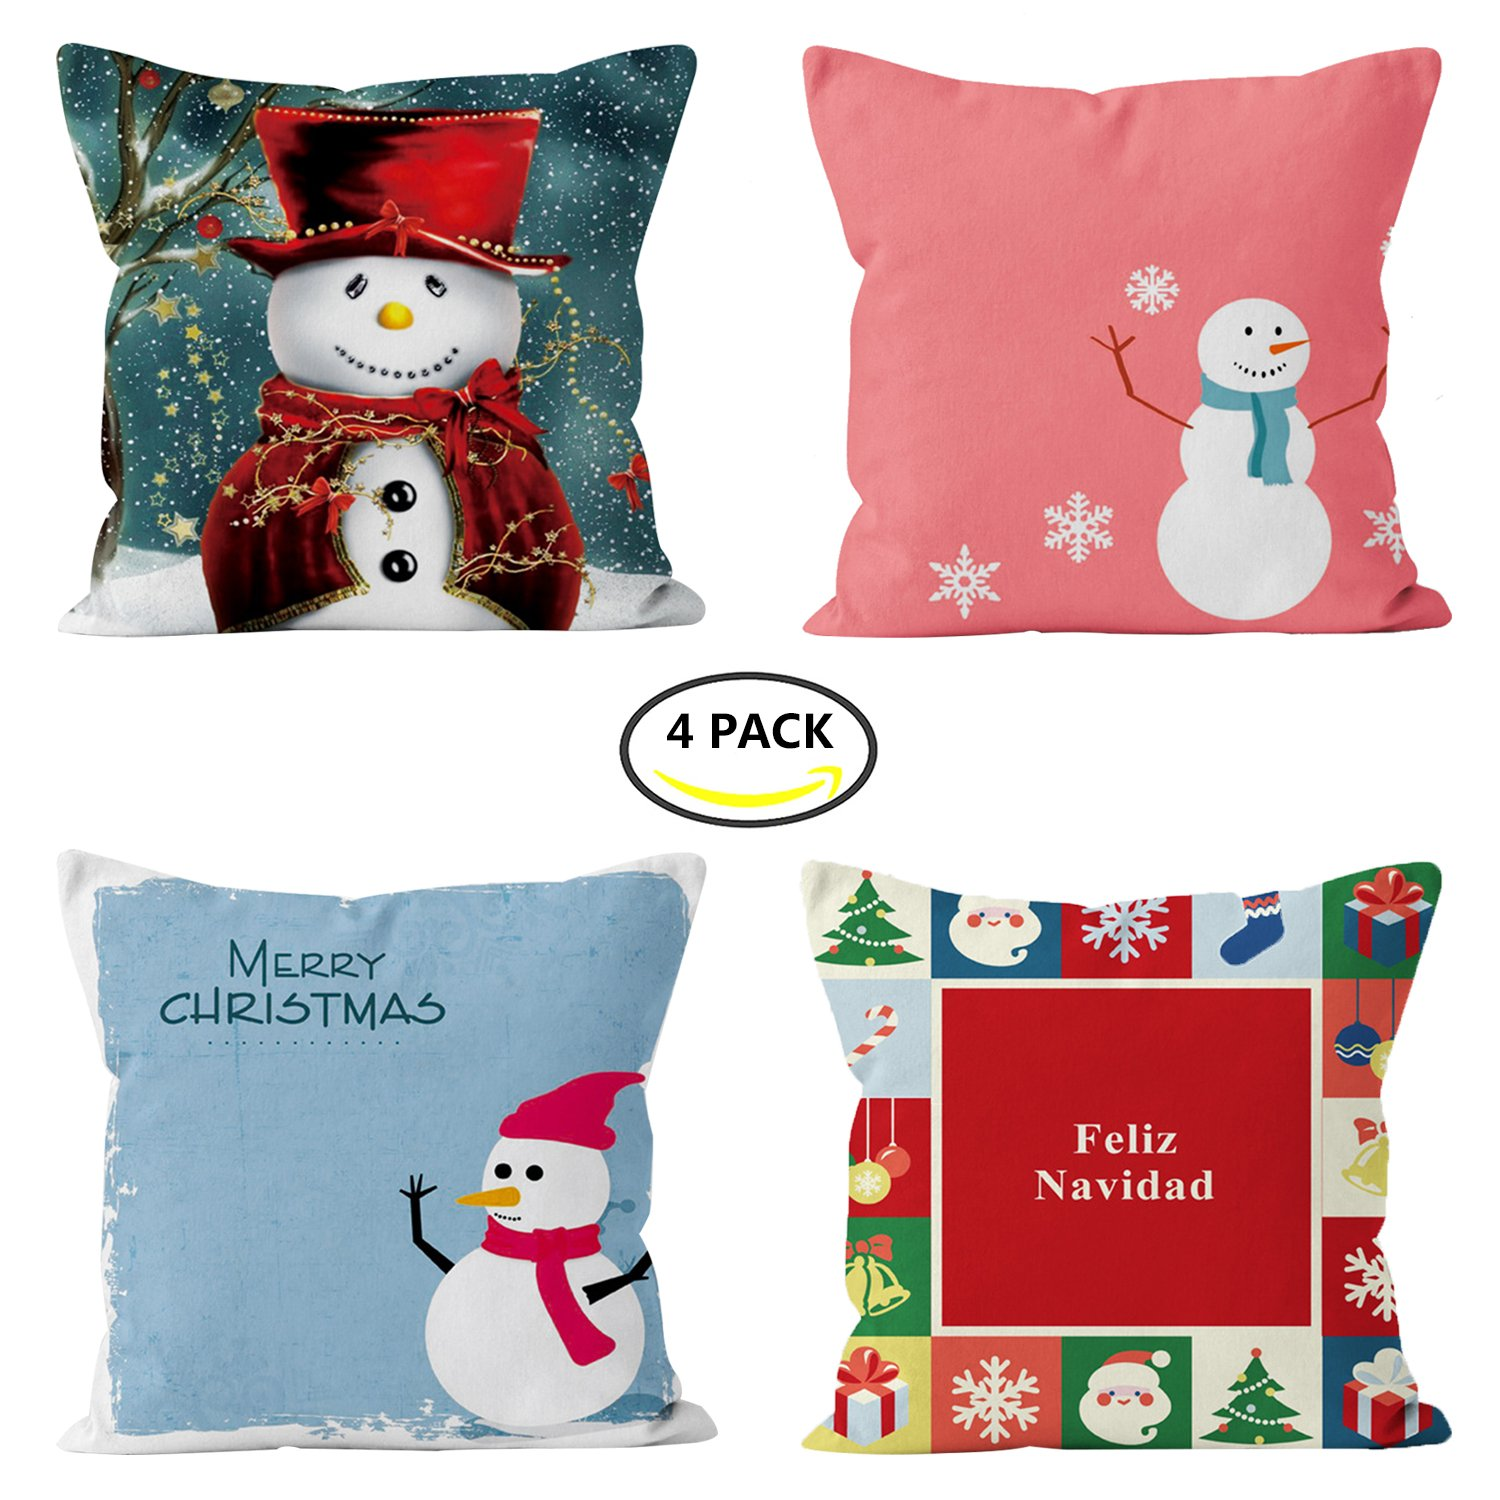 4 Pack Christmas Pillow Covers, Sublimation Print Snowman, Christmas Tree ,Santa Claus, Merry Christmas Decorative Sofa Throw Pillow Case Cushion Covers 18 X 18 Inch, Short Plush Fabric (4 pack)